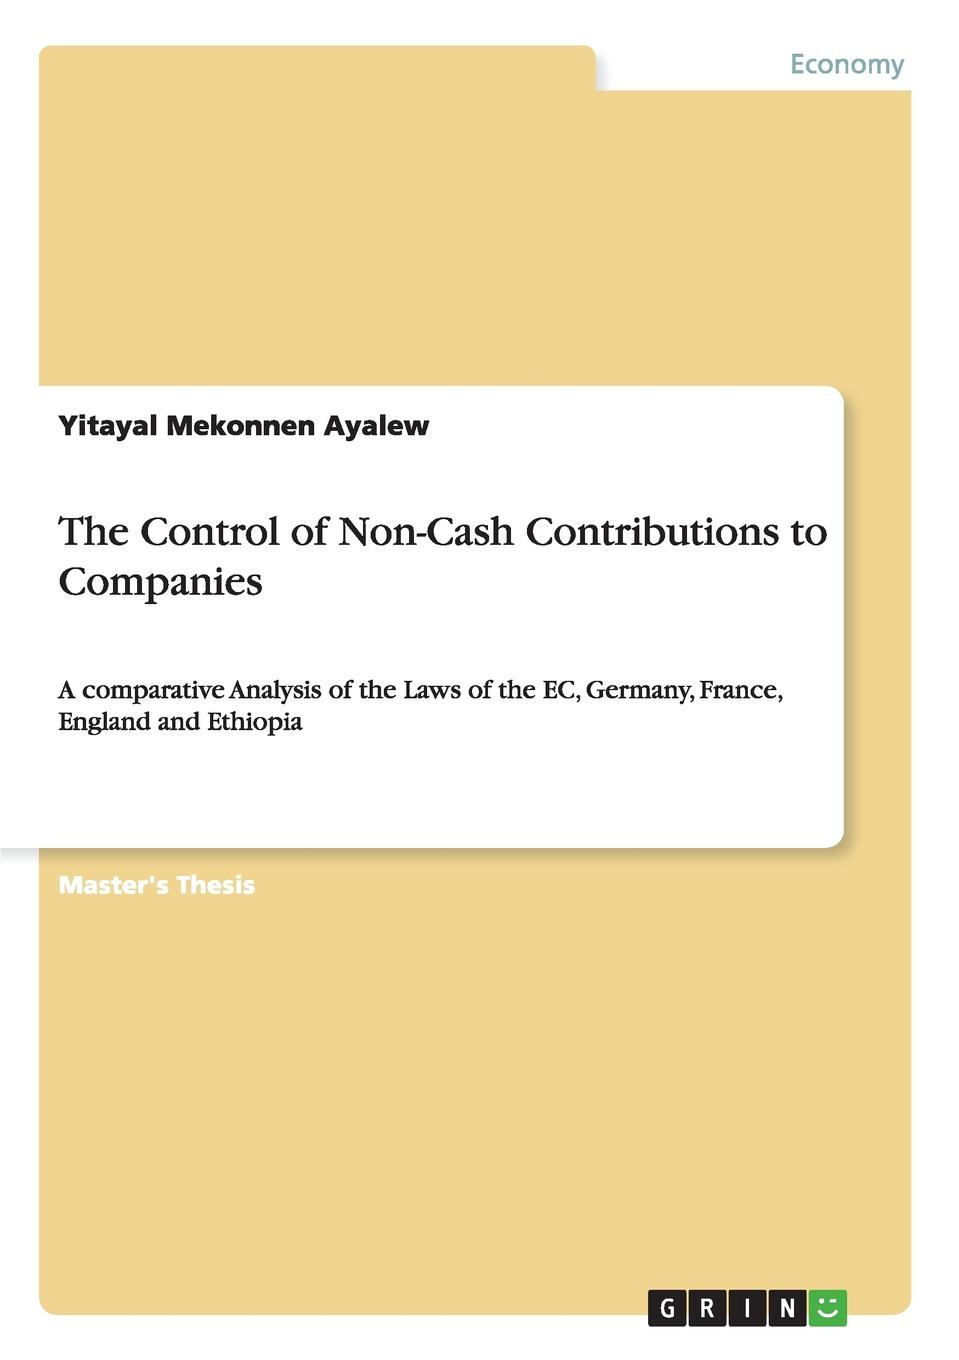 Yitayal Mekonnen Ayalew The Control of Non-Cash Contributions to Companies cherniavsky a g law as the basis of interaction of state and society round table discussion number 4